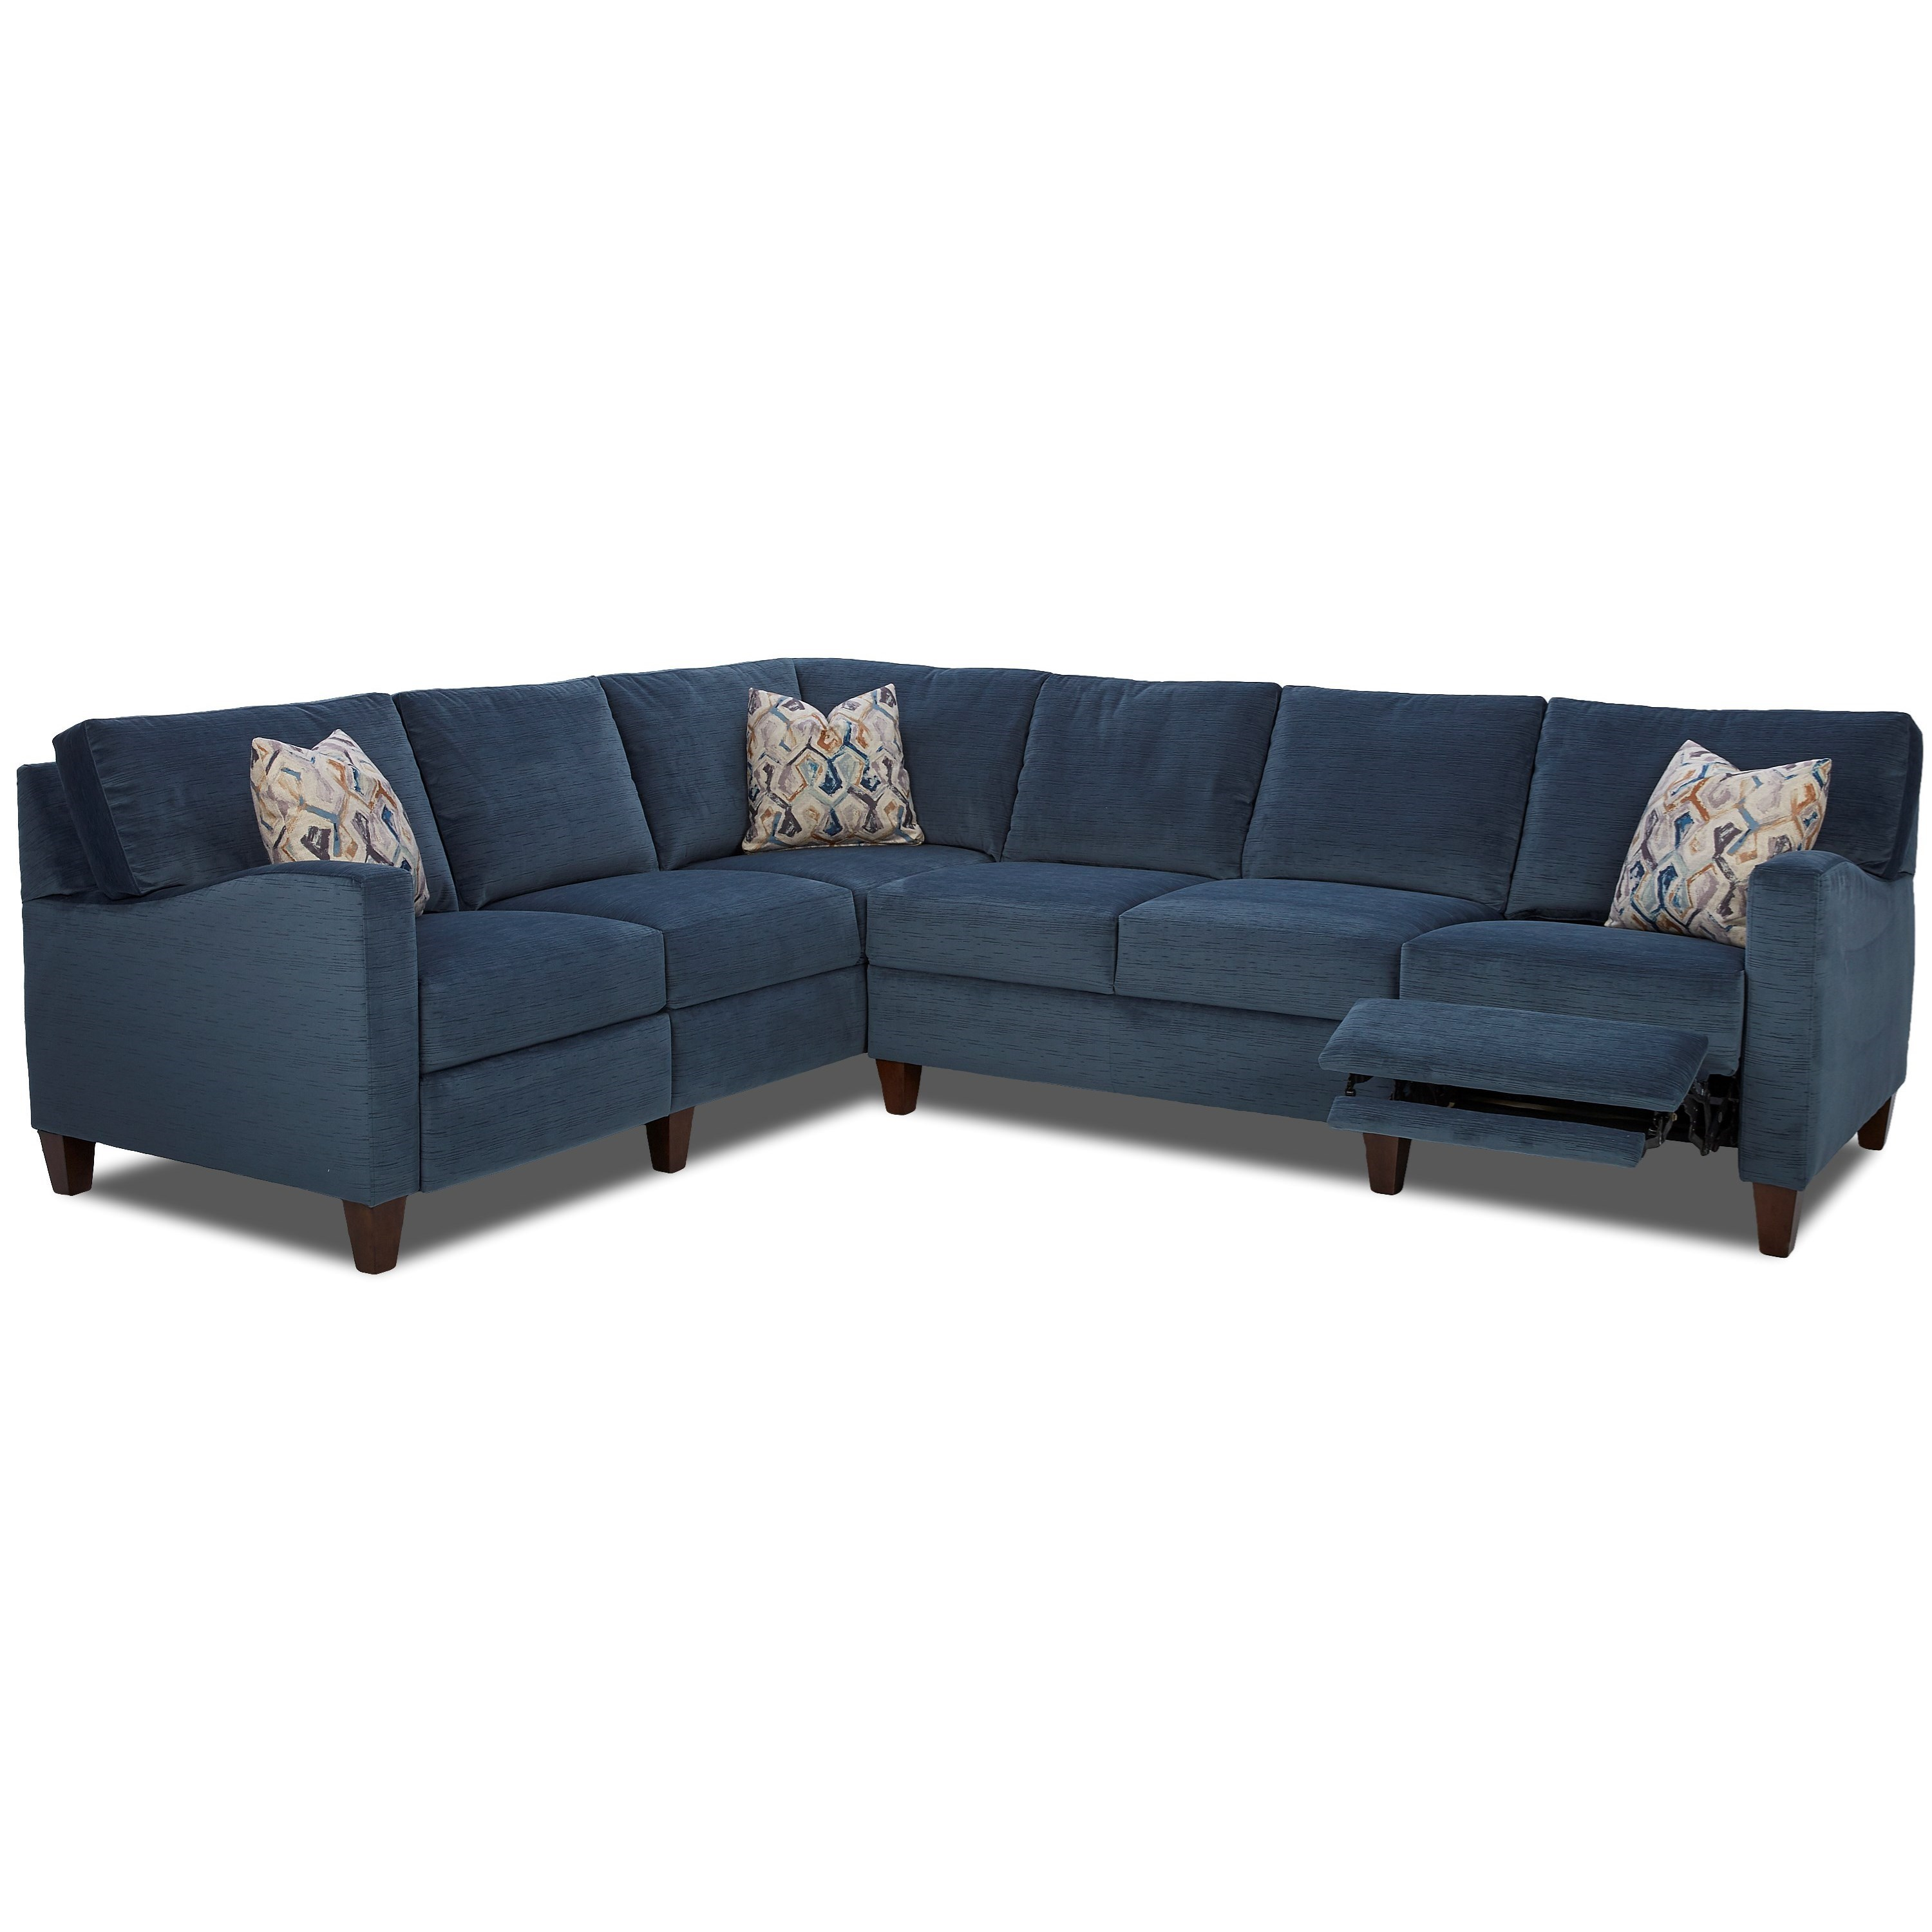 Klaussner Colleen Hybrid Reclining Sectional with LAF Corner Sofa  sc 1 st  Wayside Furniture & Klaussner Colleen Hybrid Reclining Sectional with LAF Corner Sofa ... islam-shia.org